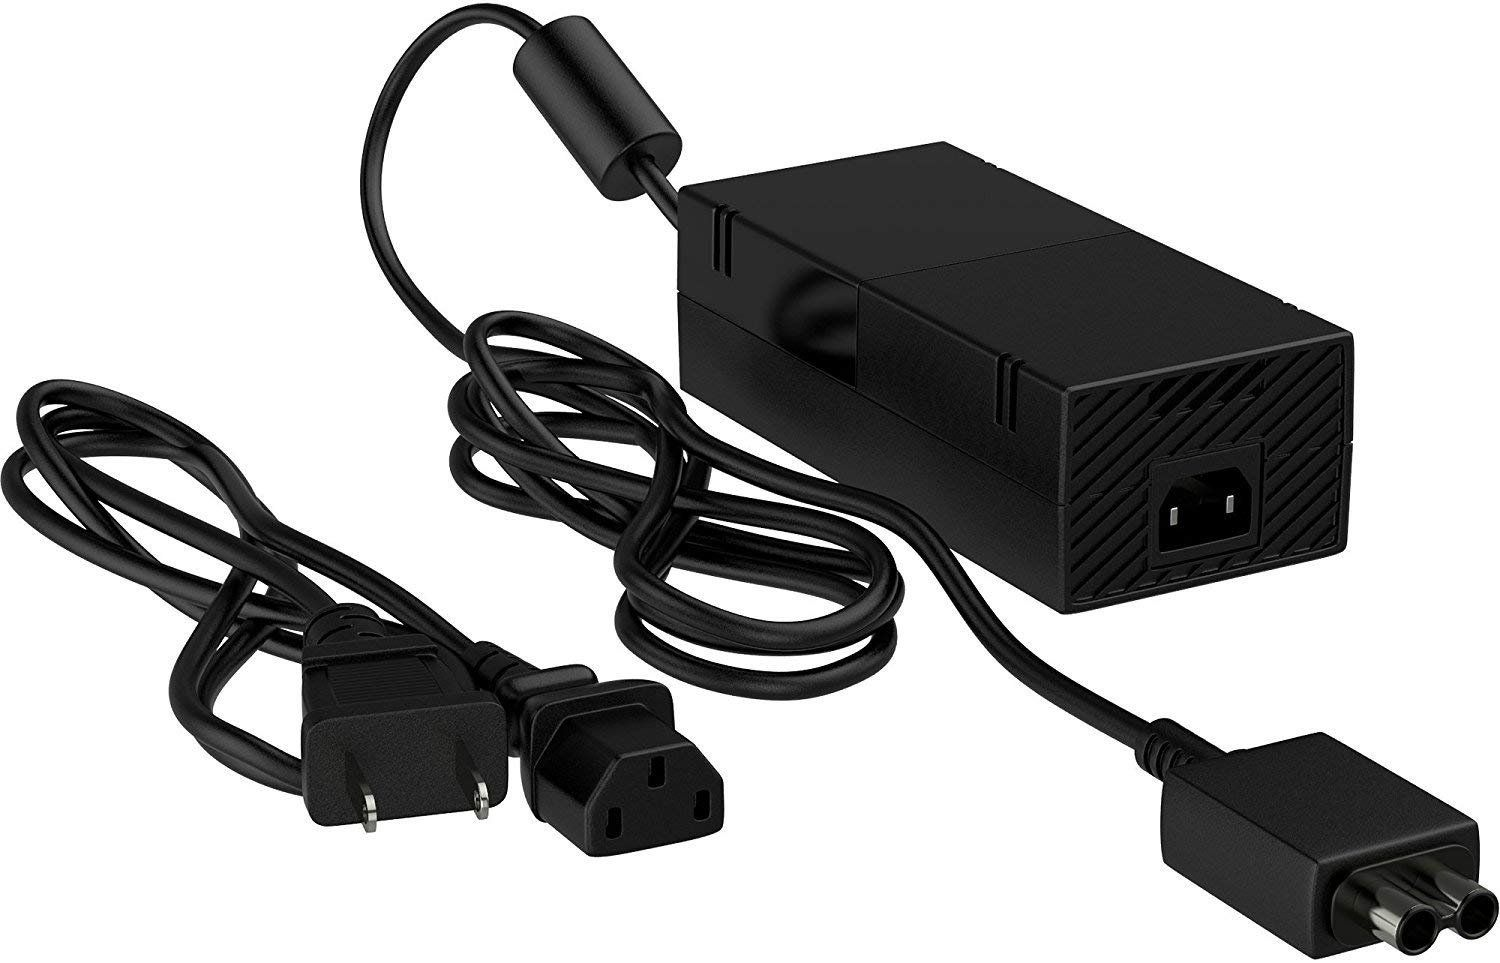 hight resolution of ortz xbox one power supply enhanced quiet version ac adapter cord best for charging brick style great charger accessory kit with cable version